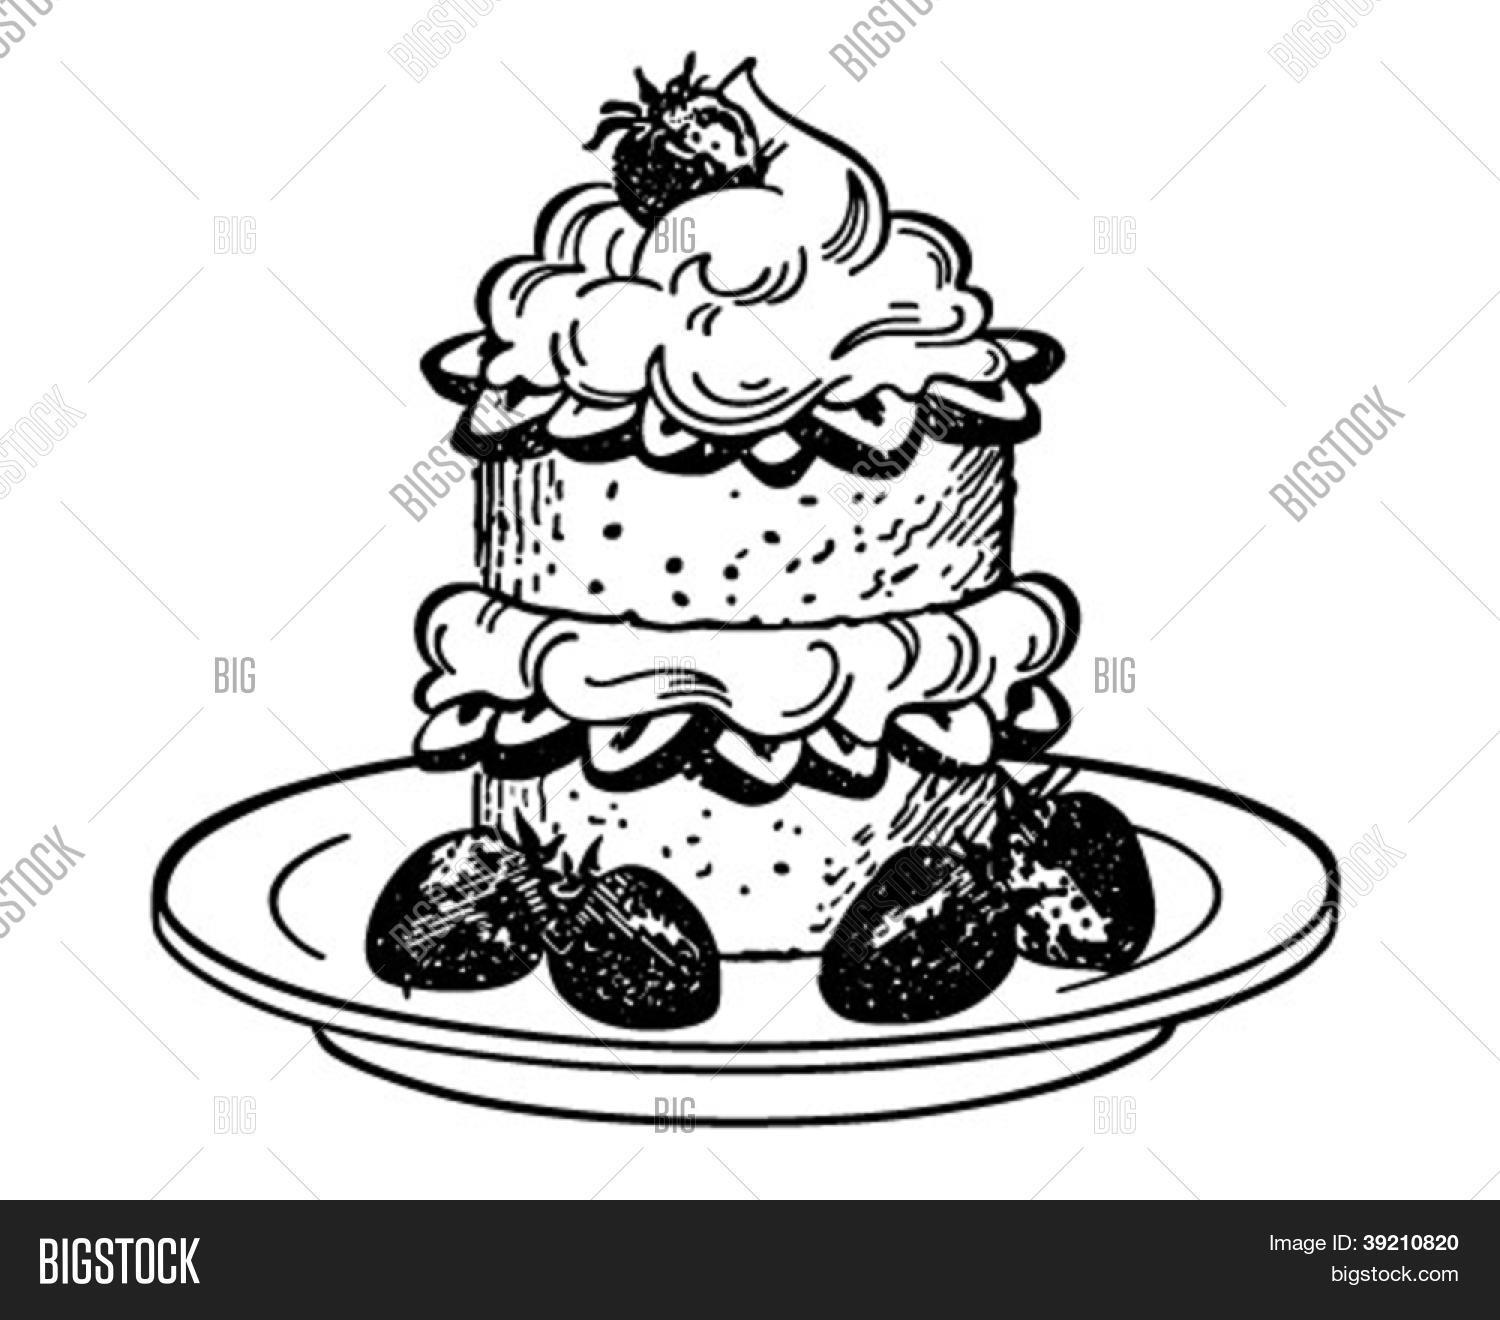 Strawberry Shortcake Dessert - Vector  for Clipart Strawberry Black And White  131fsj